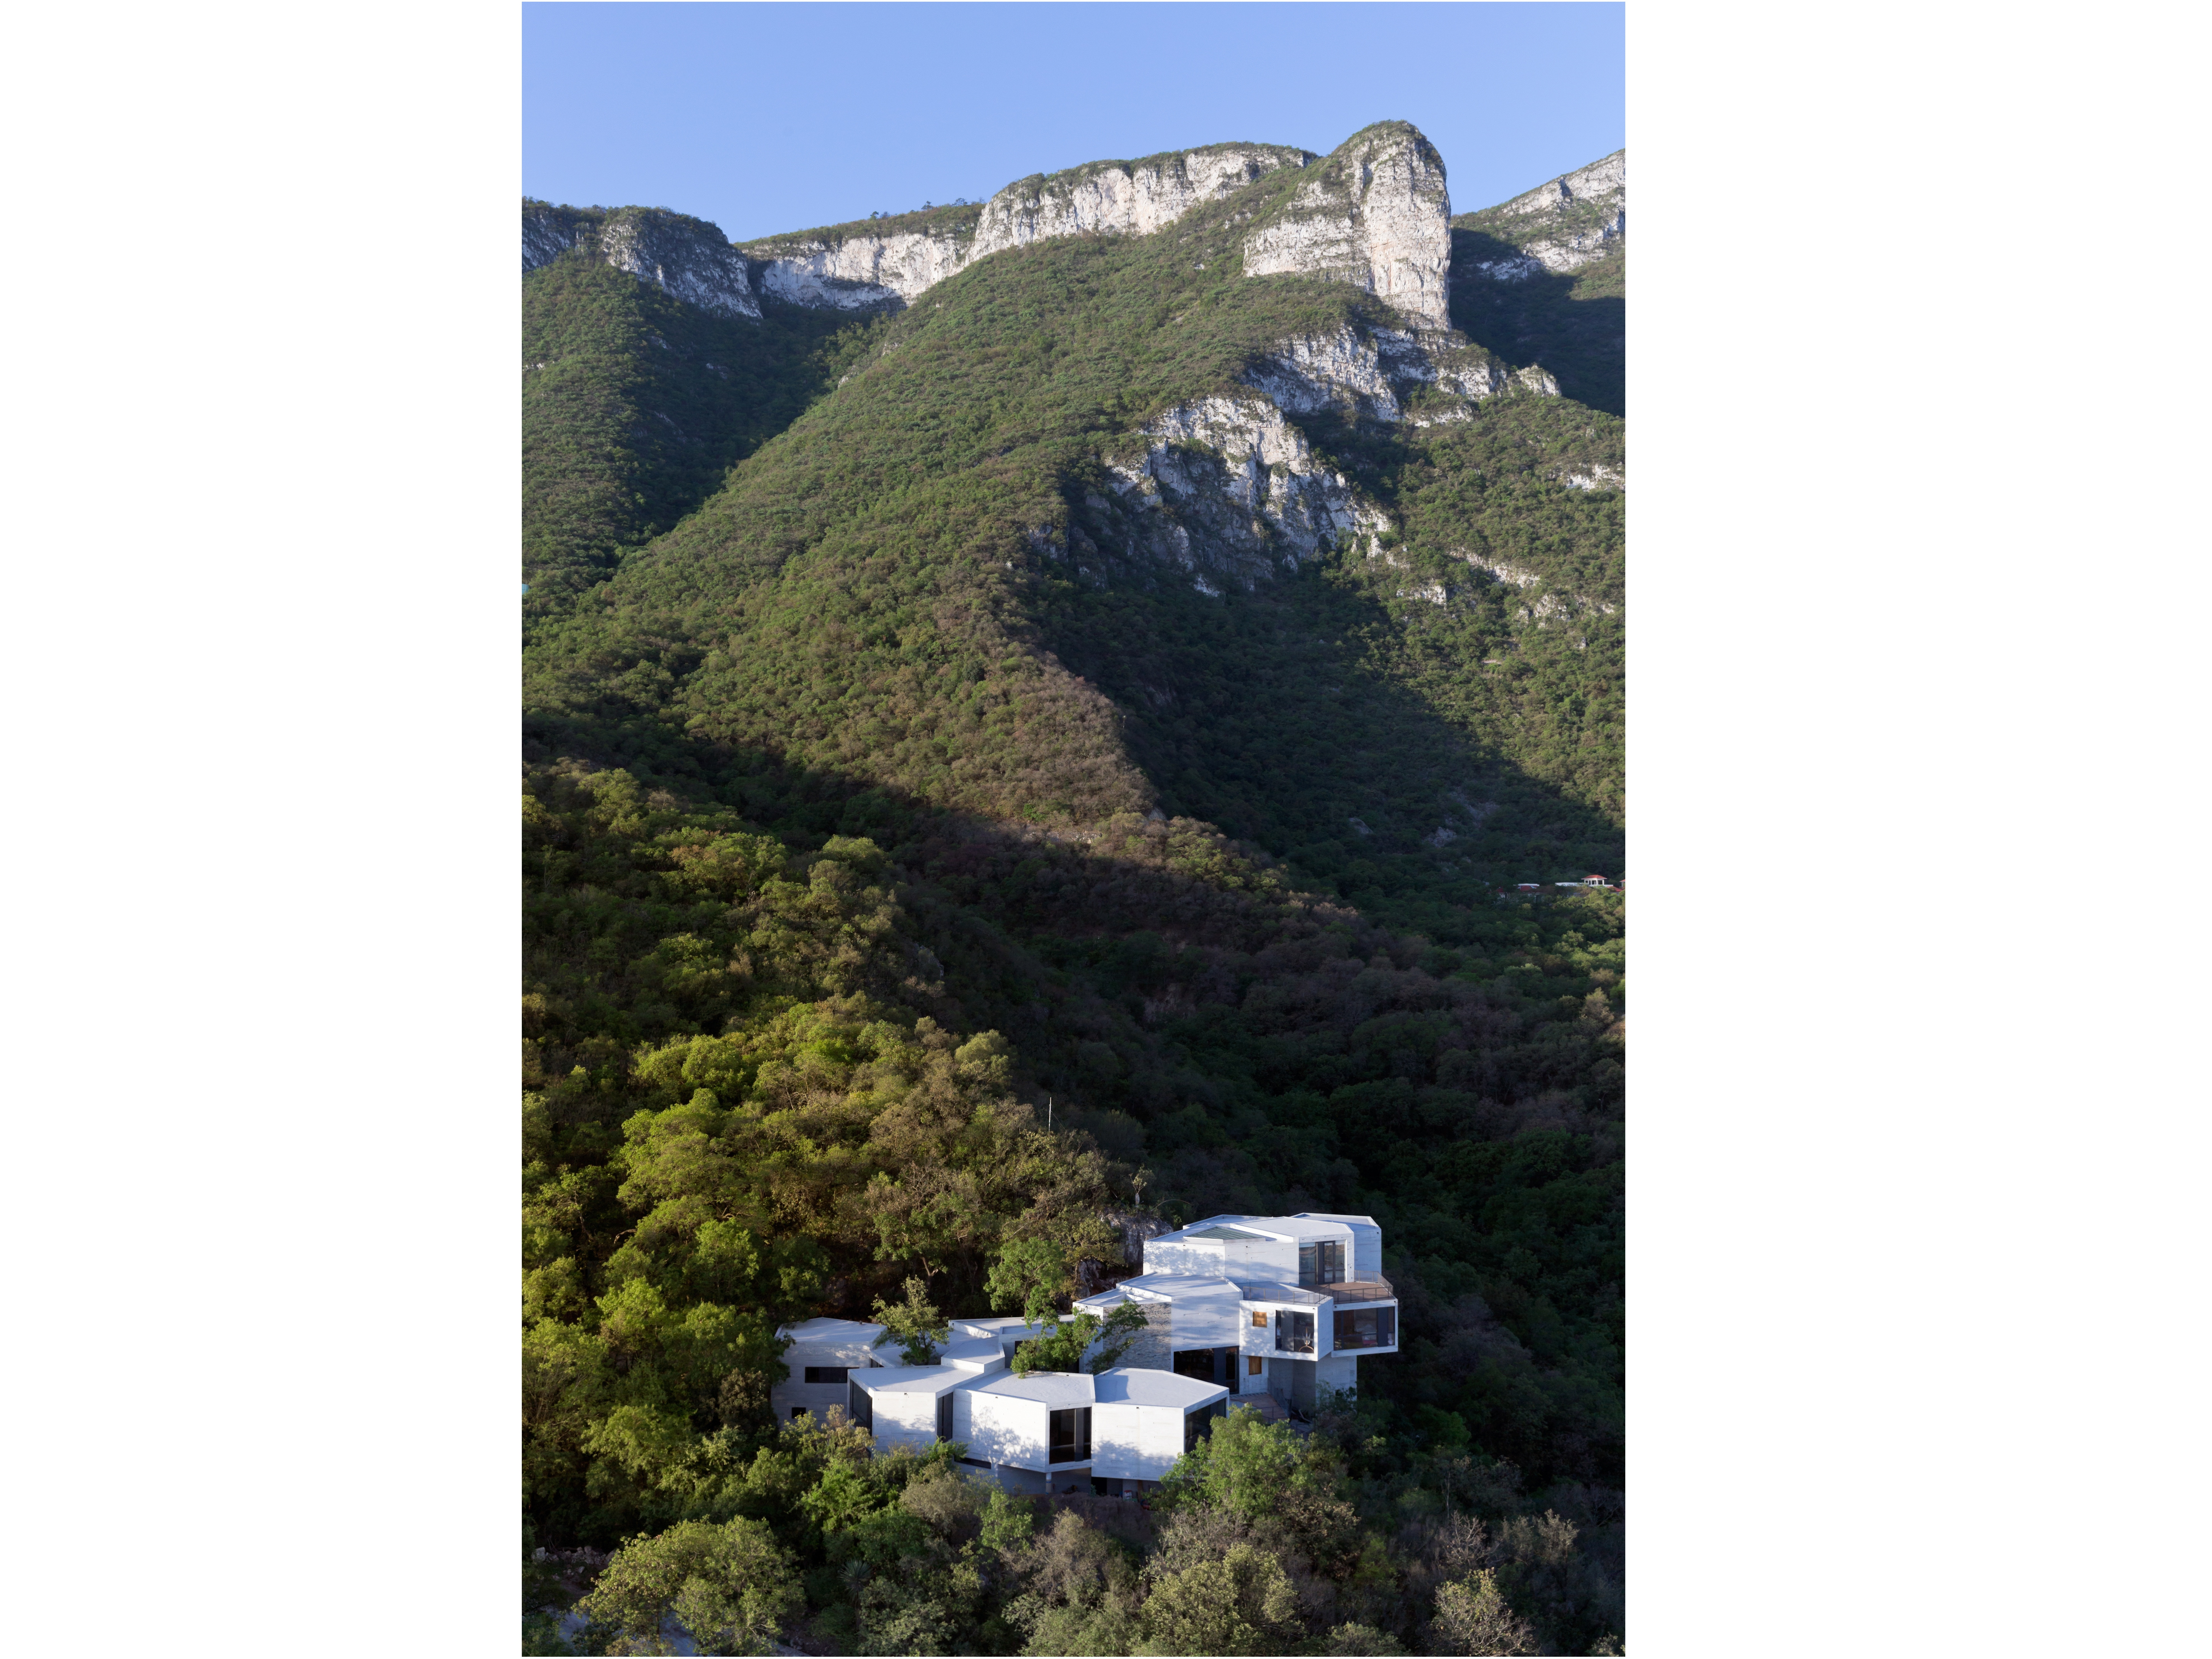 Iwan Baan is currently working on a book with Mexican architect Tatiana Bilbao, whose concrete Casa Ventura nestles in a forested hillside outside of the city of Monterrey, Mexico. Photograph: Iwan Baan.